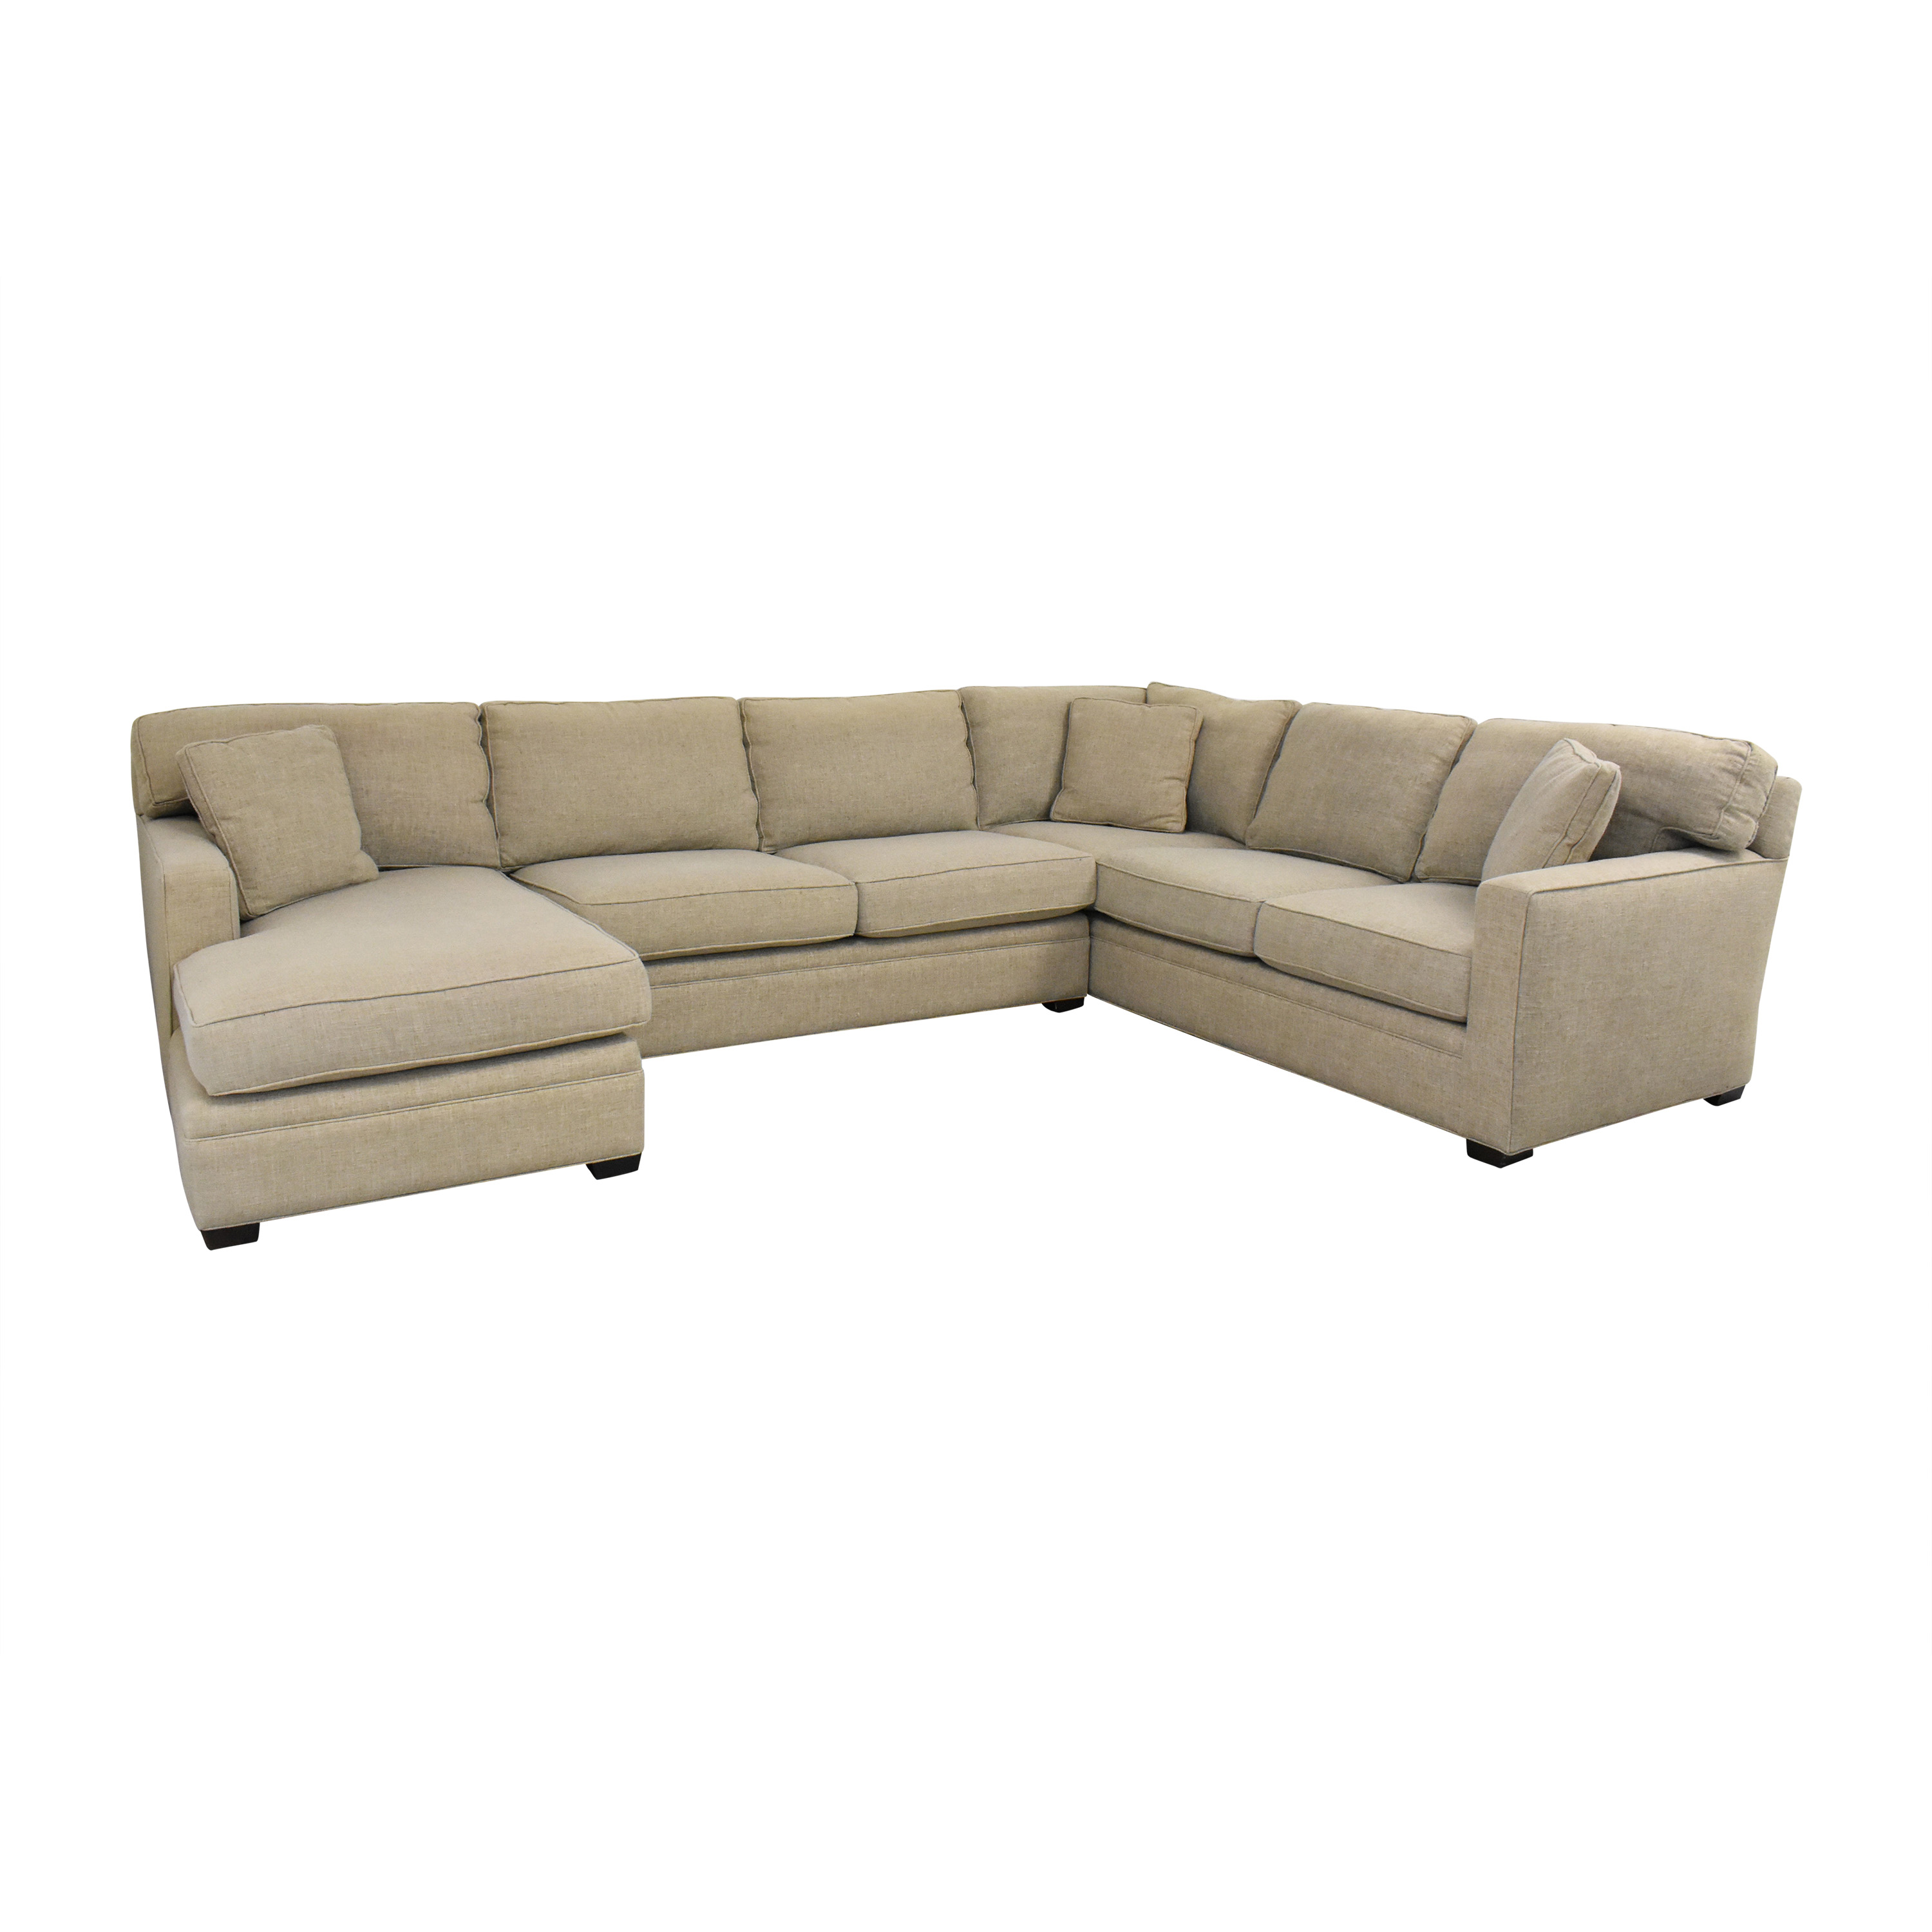 Lillian August Lillian August L Shaped Sectional Sofa with Chaise used